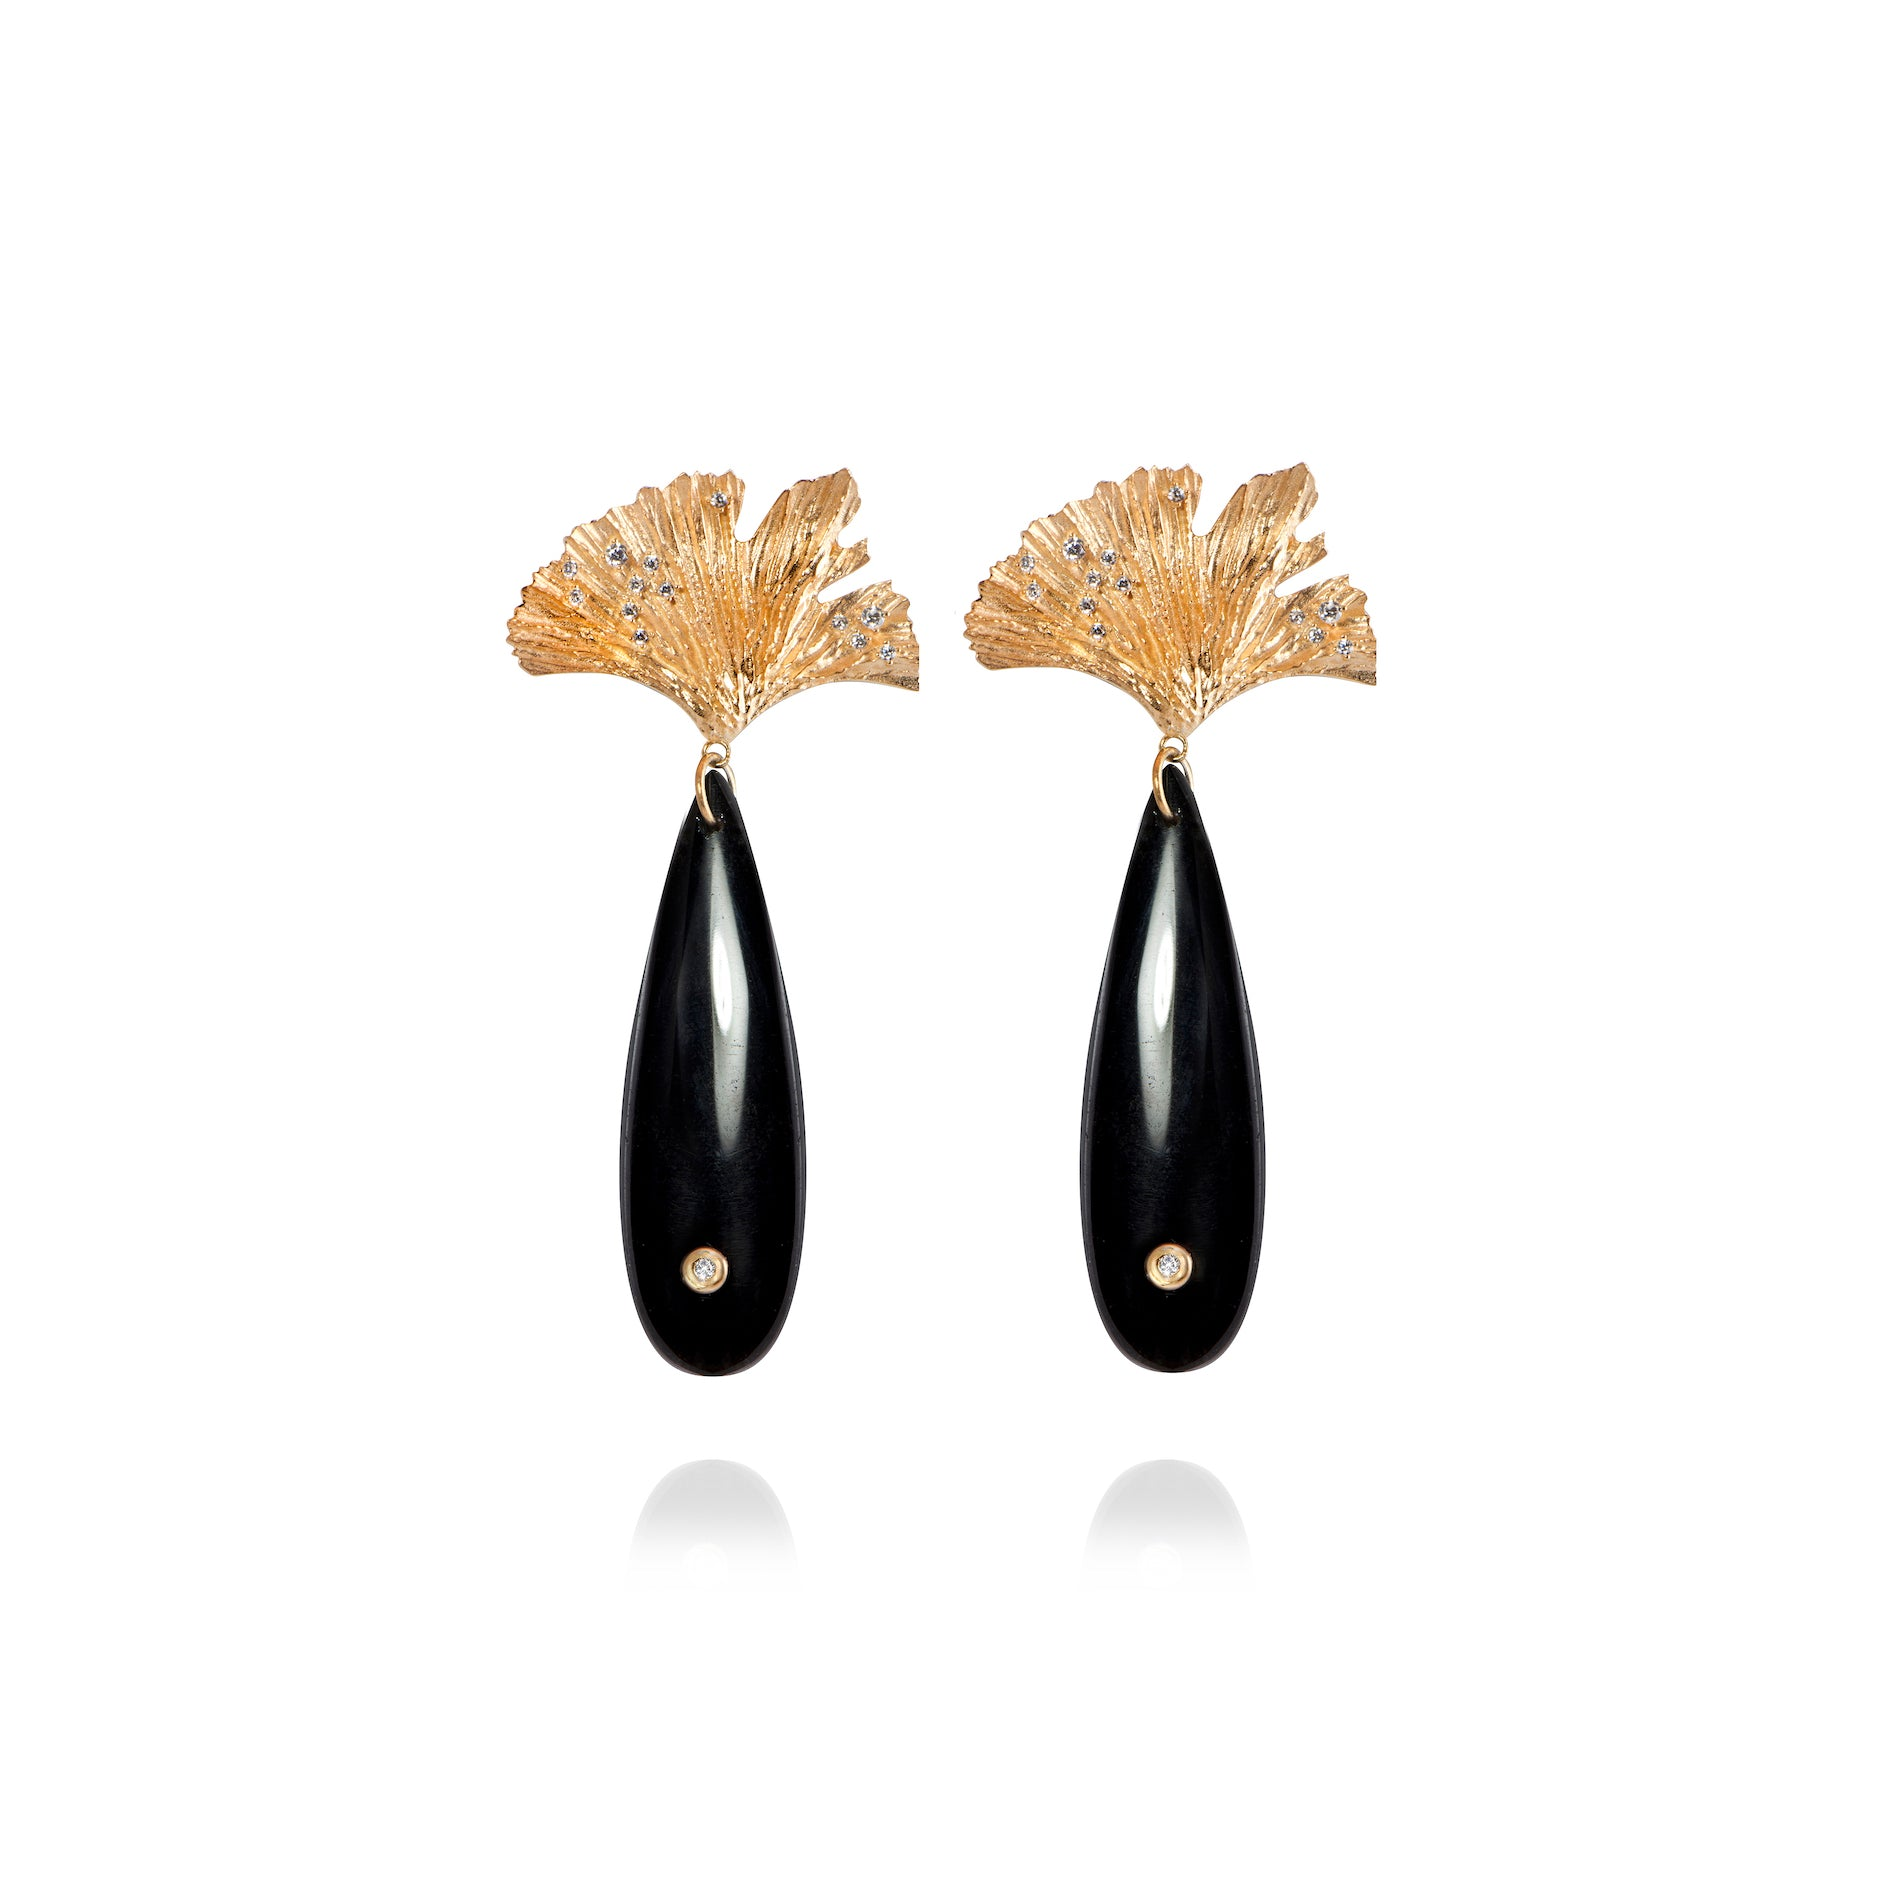 APPLES & FIGS - SEA SHORE OBSIDIAN & GOLD LEAF EARRINGS